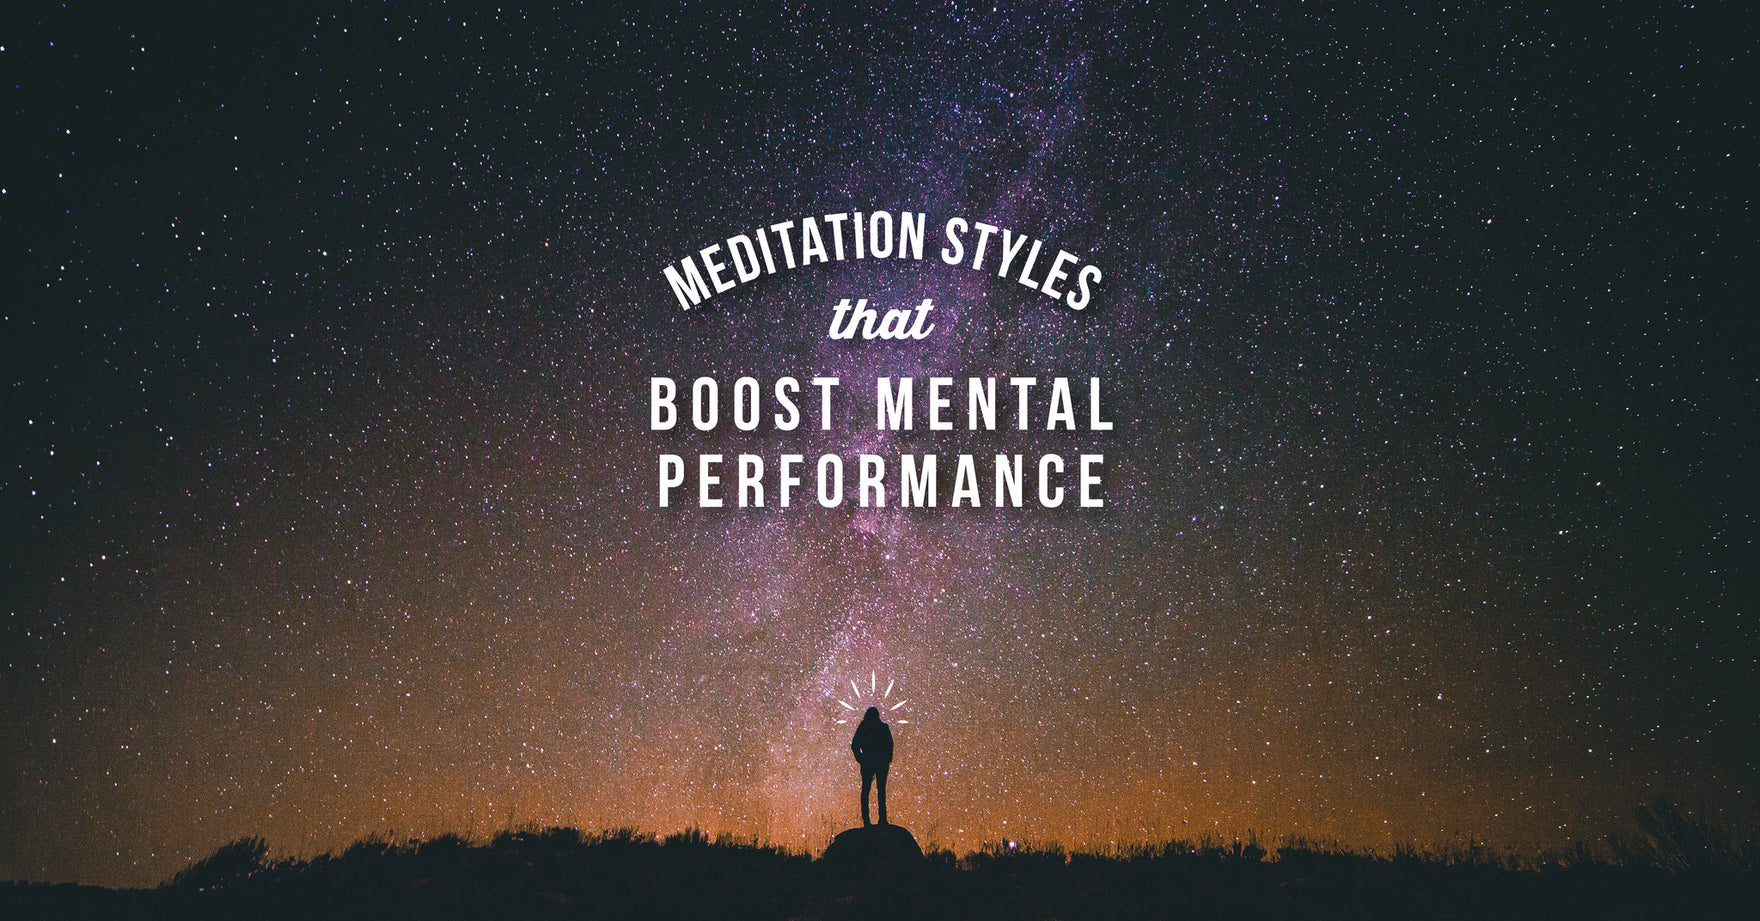 Meditation Styles That Boost Mental Performance